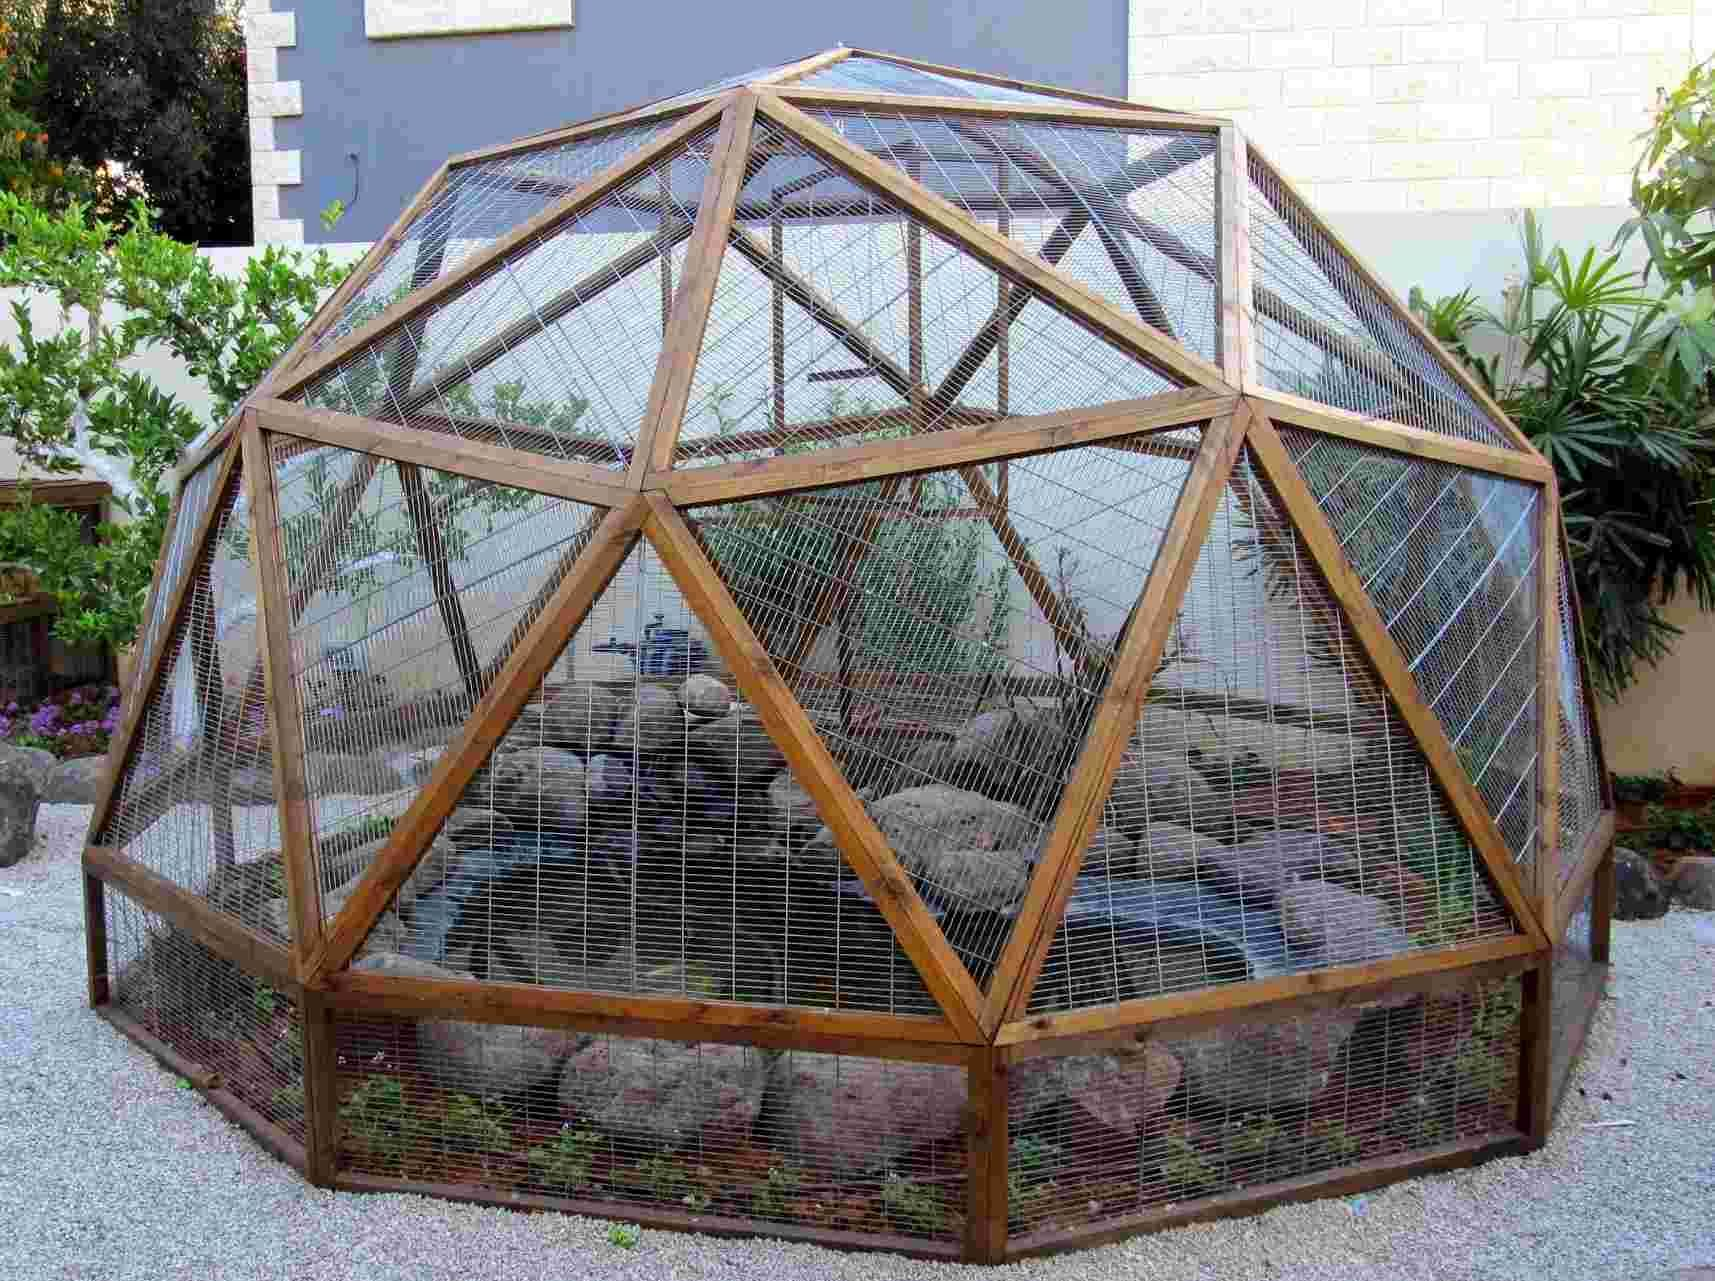 Geodesic dome Planning on building your own See how I built